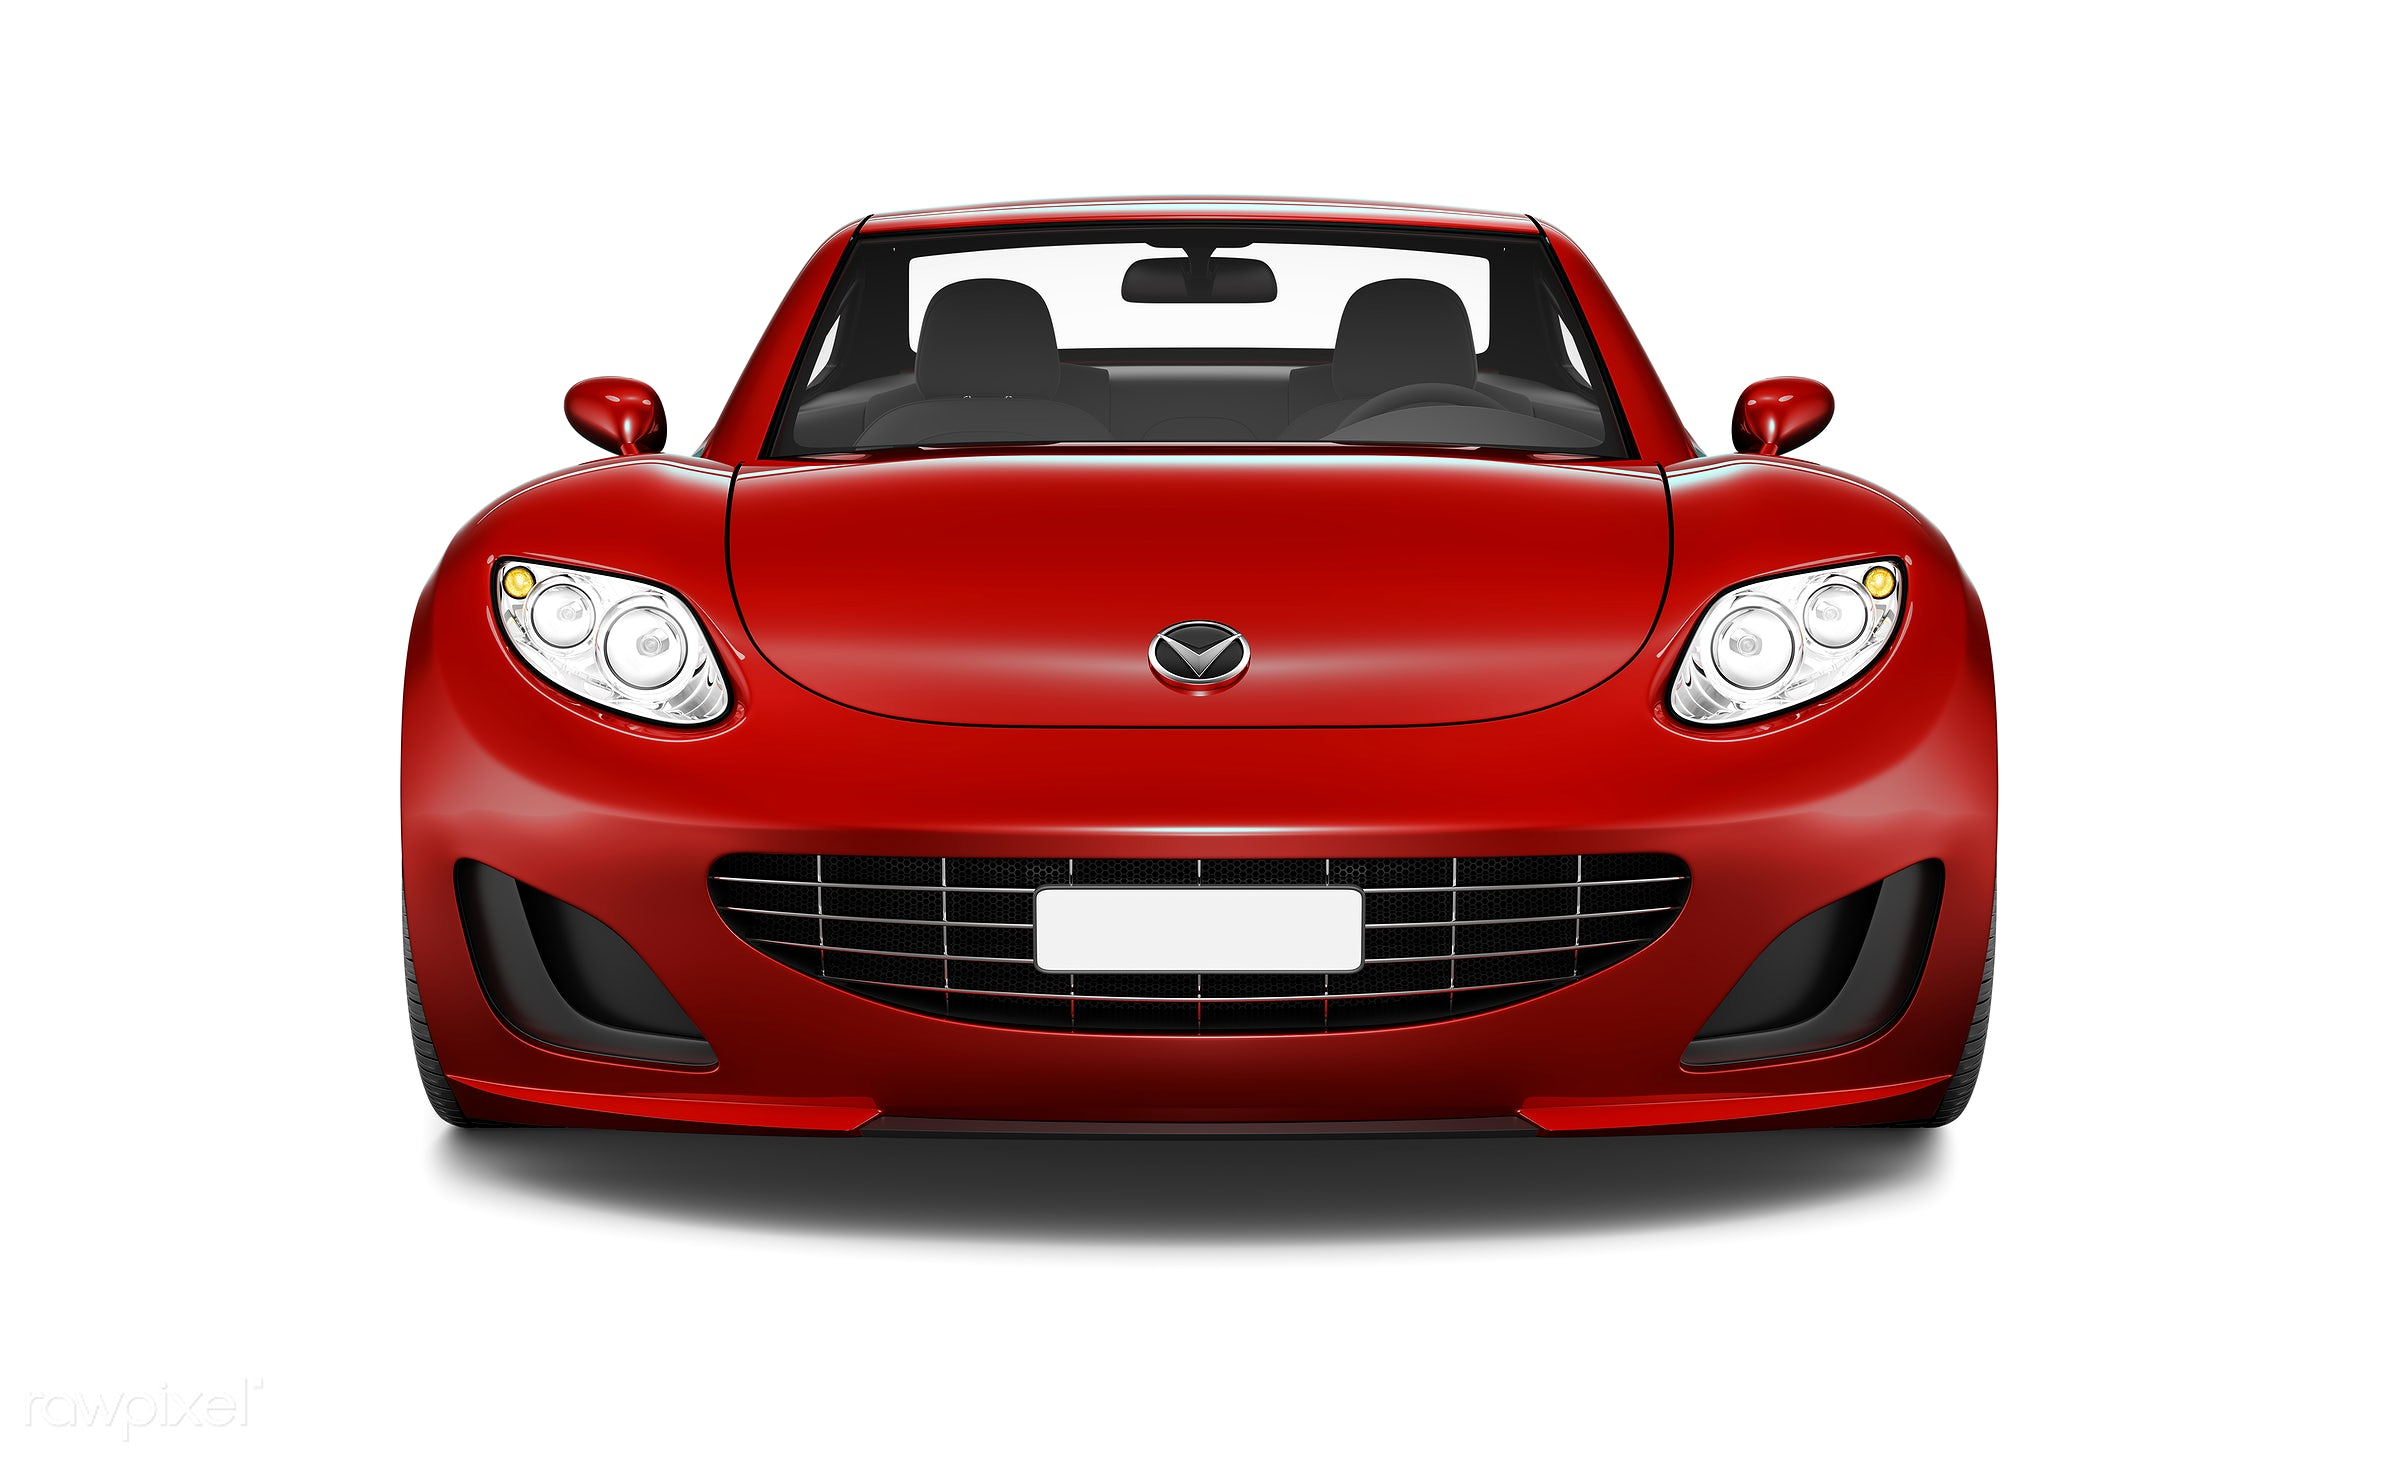 Three dimensional image of red car - car, 3d, automobile, automotive, brandless, concept car, elegant, graphic, holiday,...